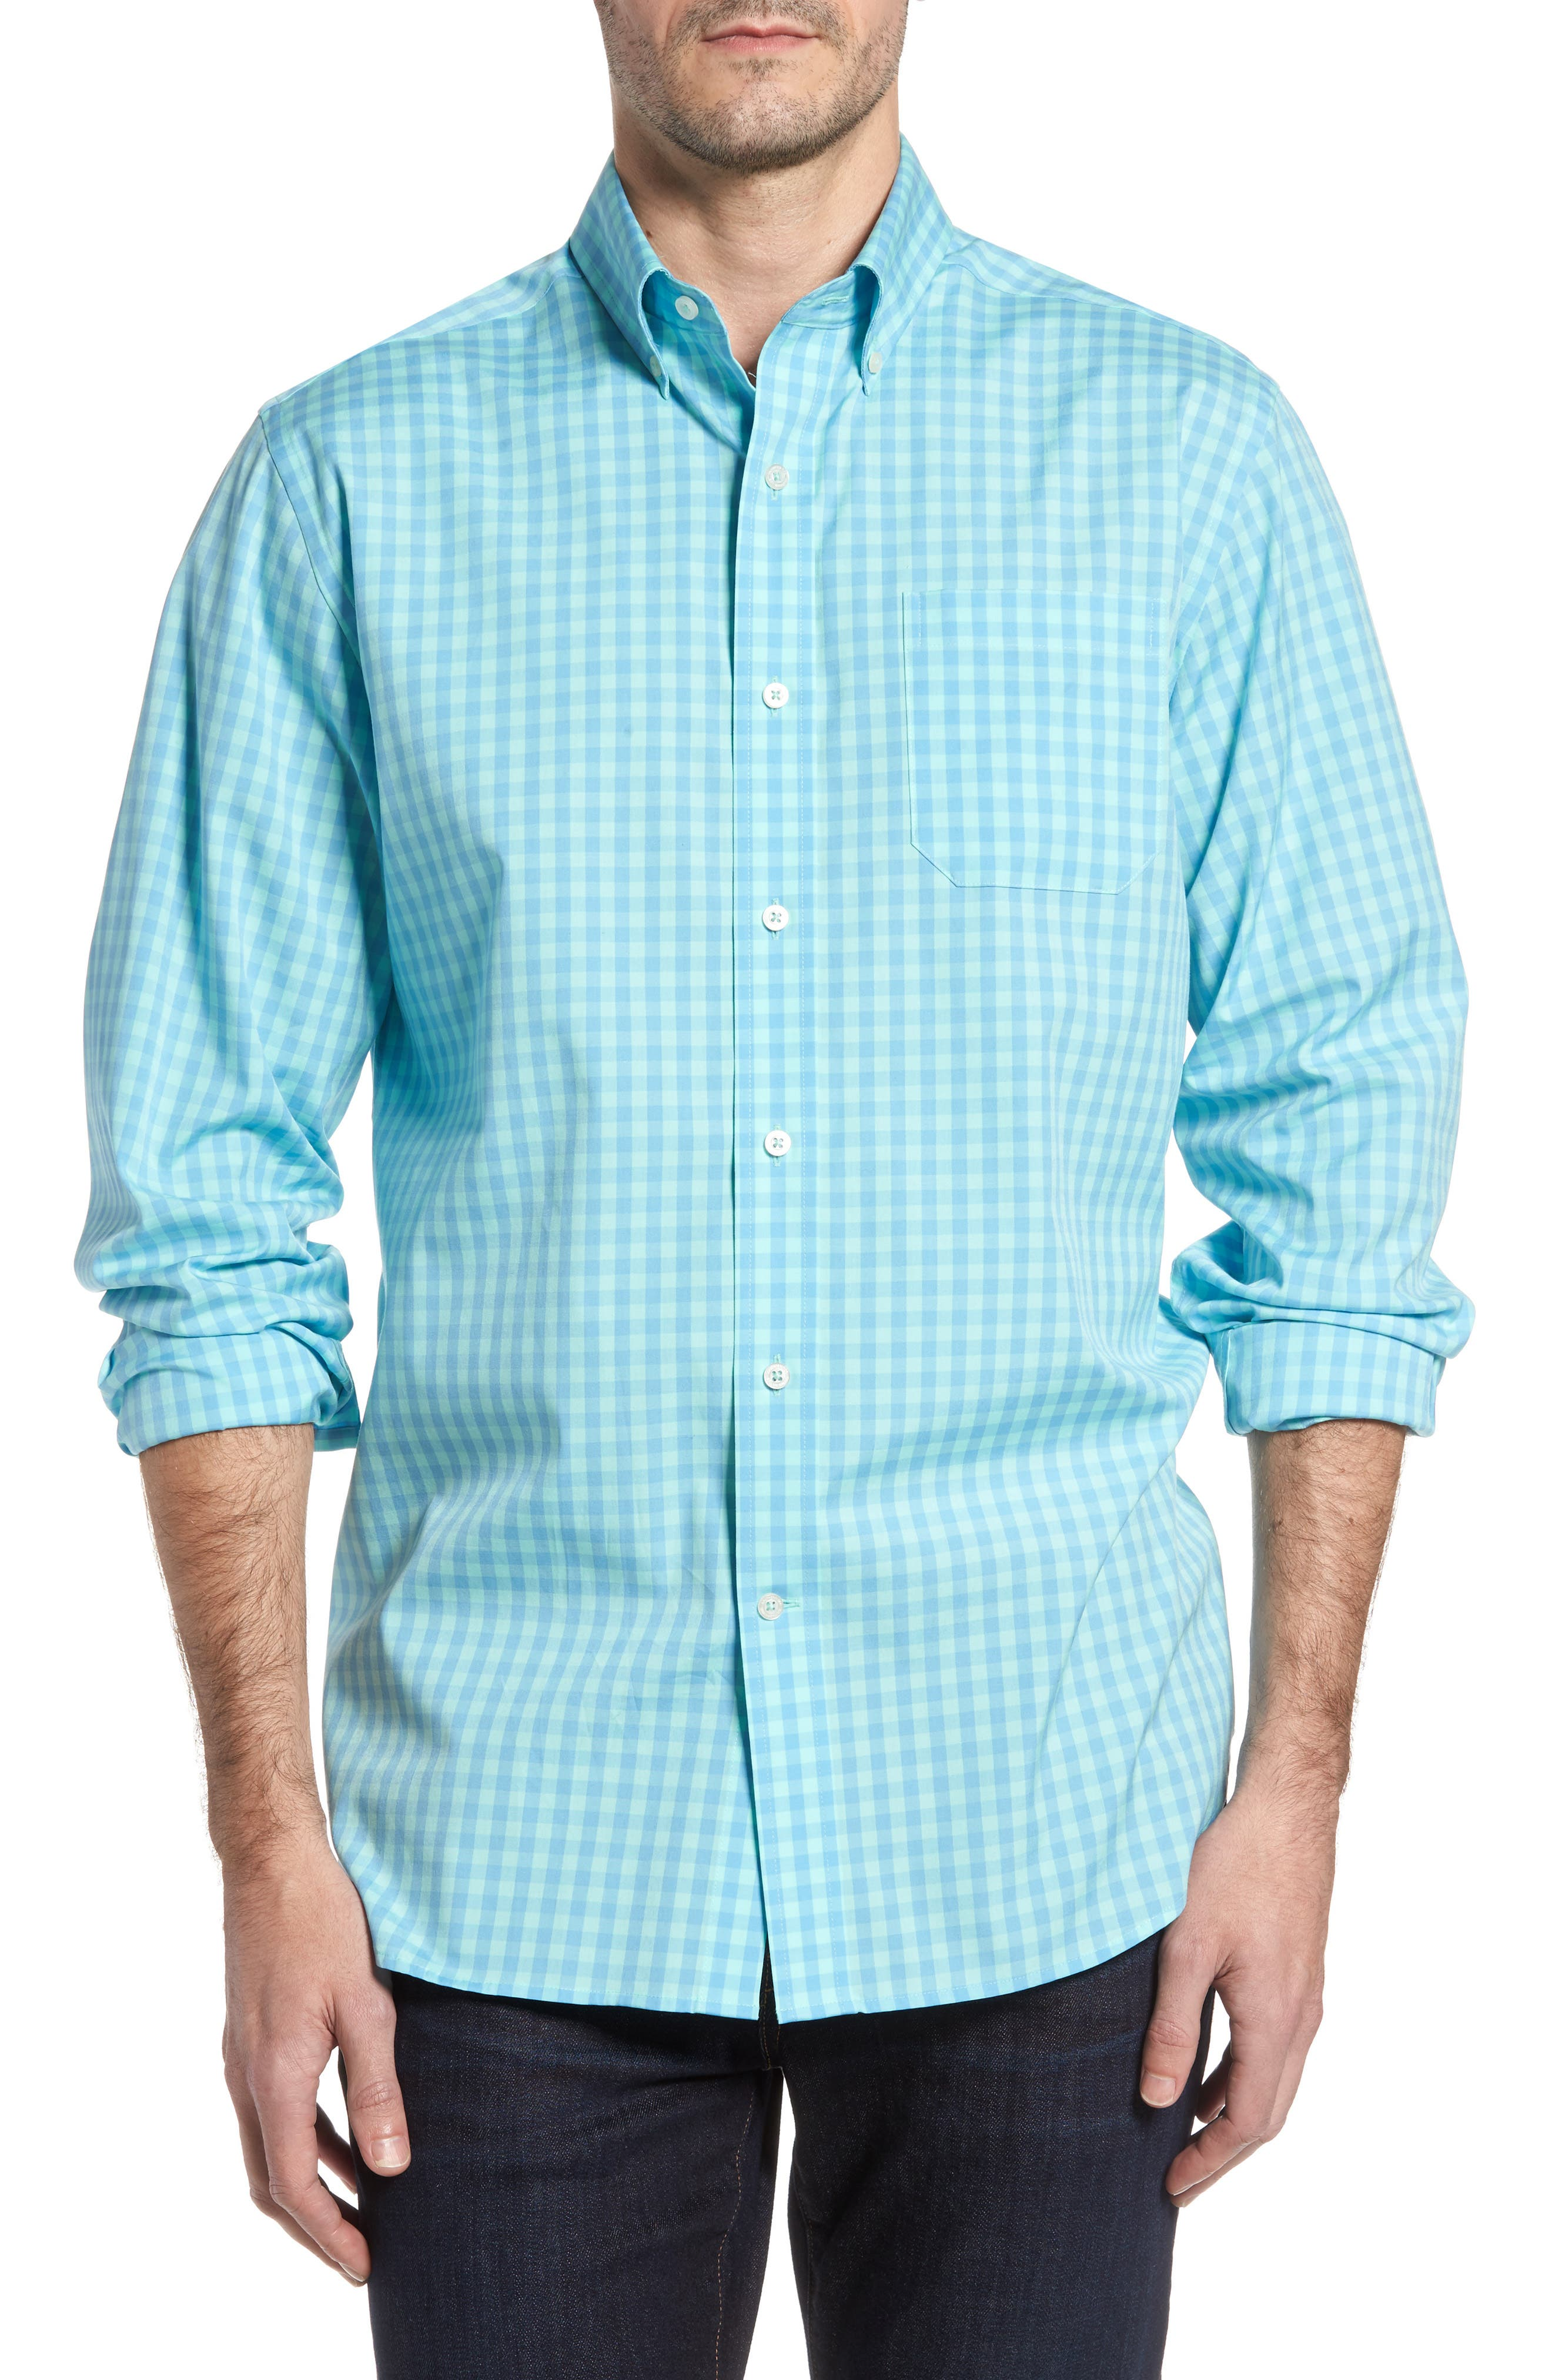 Southern Tide Getaway Gingham Classic Fit Sport Shirt